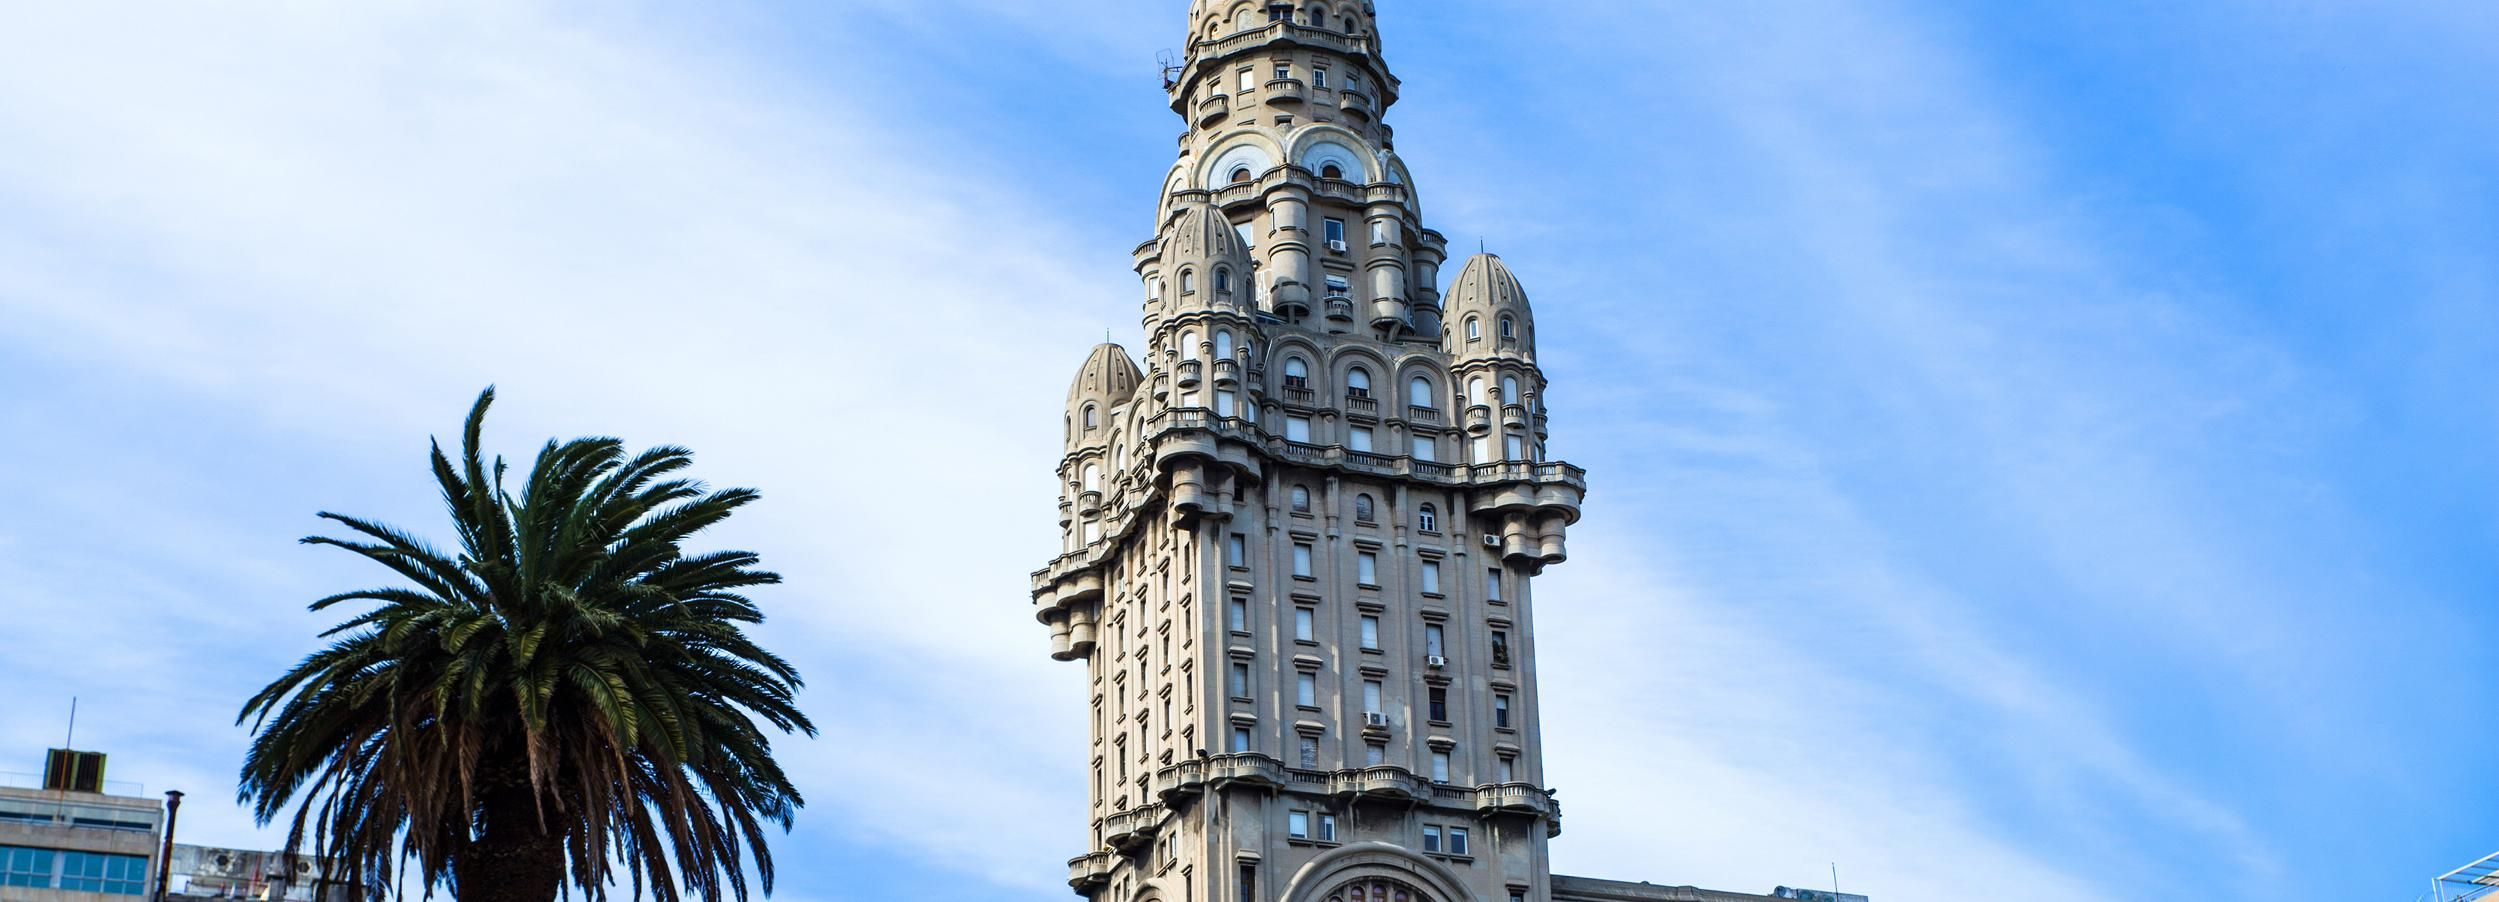 Montevideo: Palacio Salvo Official Ticket with Guided Tour